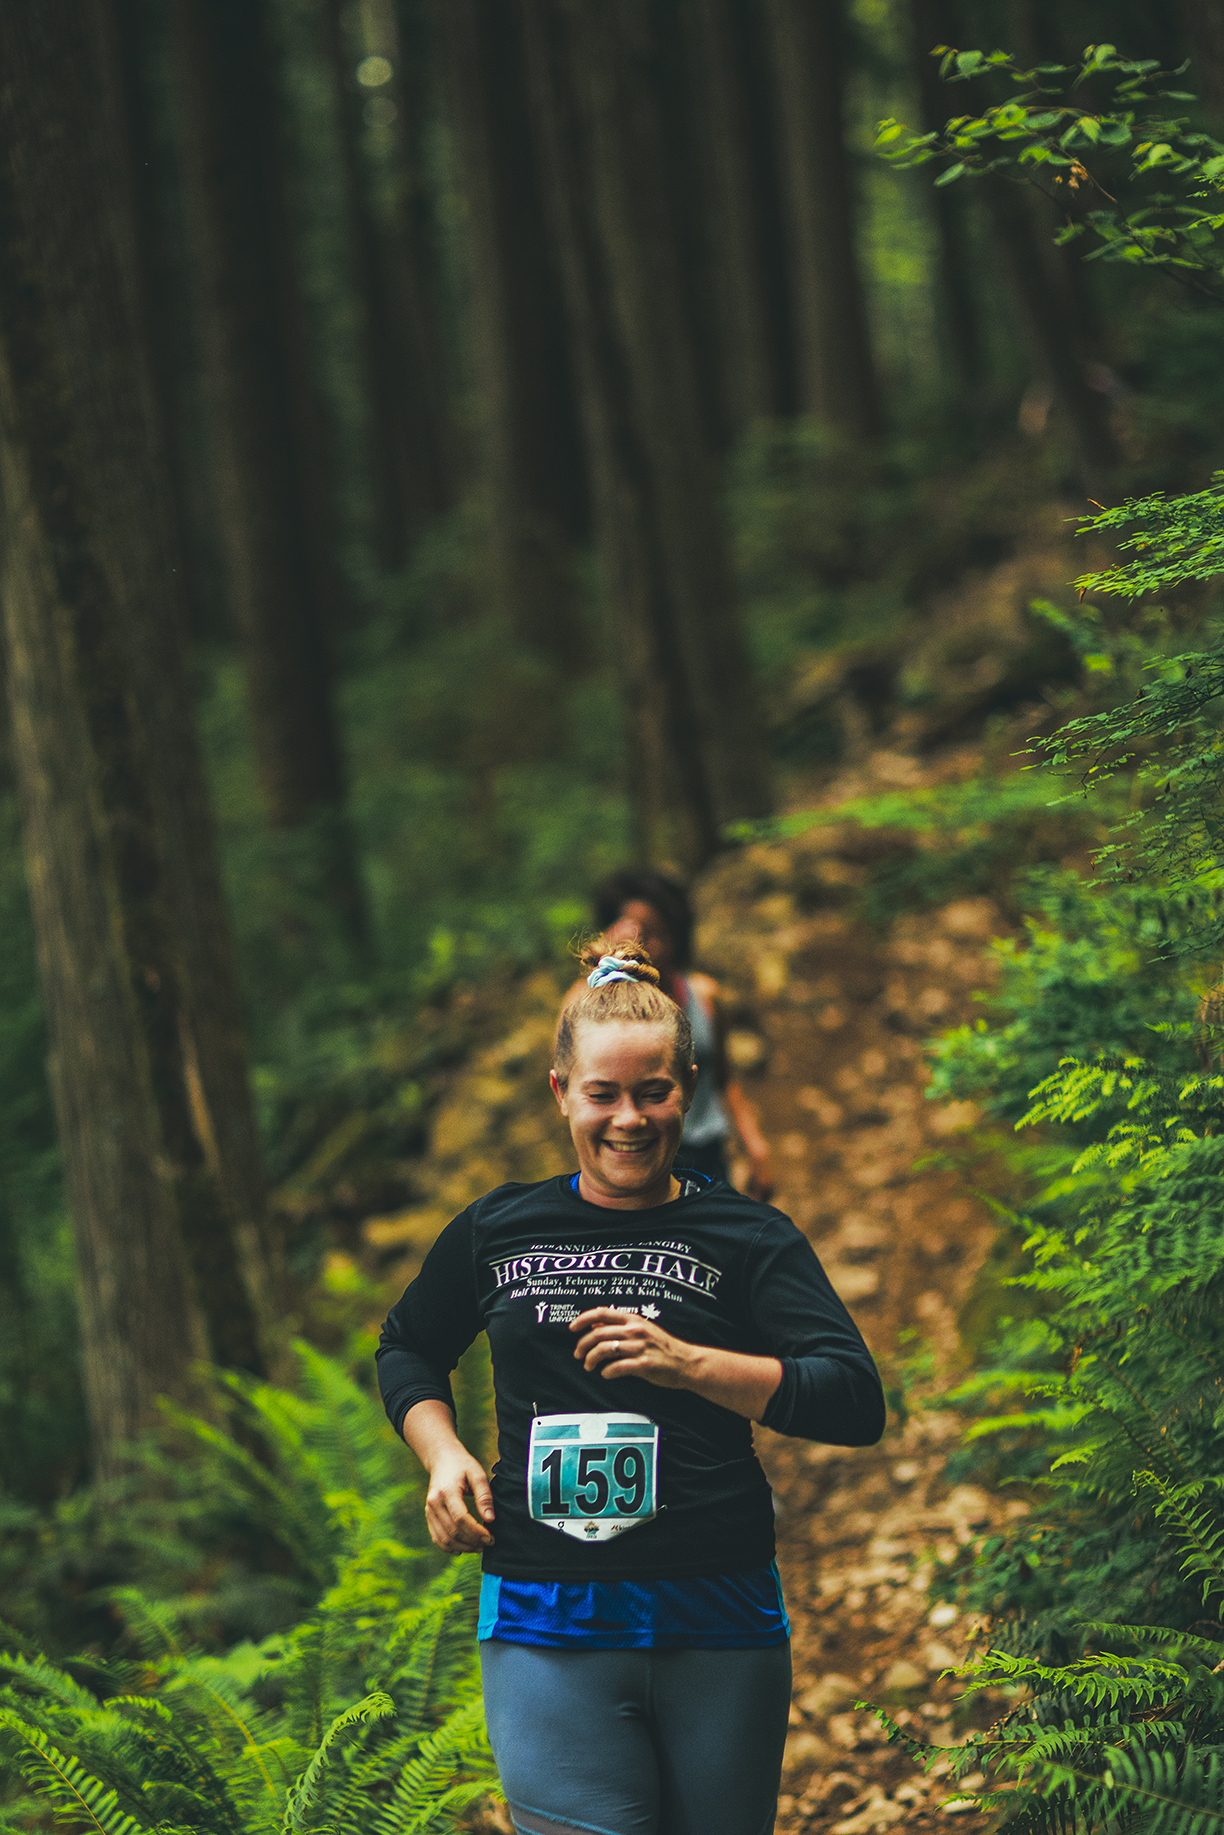 Fraser Valley Trail Races - Bear Mountain - IMG_2070 by Brice Ferre Studio - Vancouver Portrait Adventure and Athlete Photographer.jpg